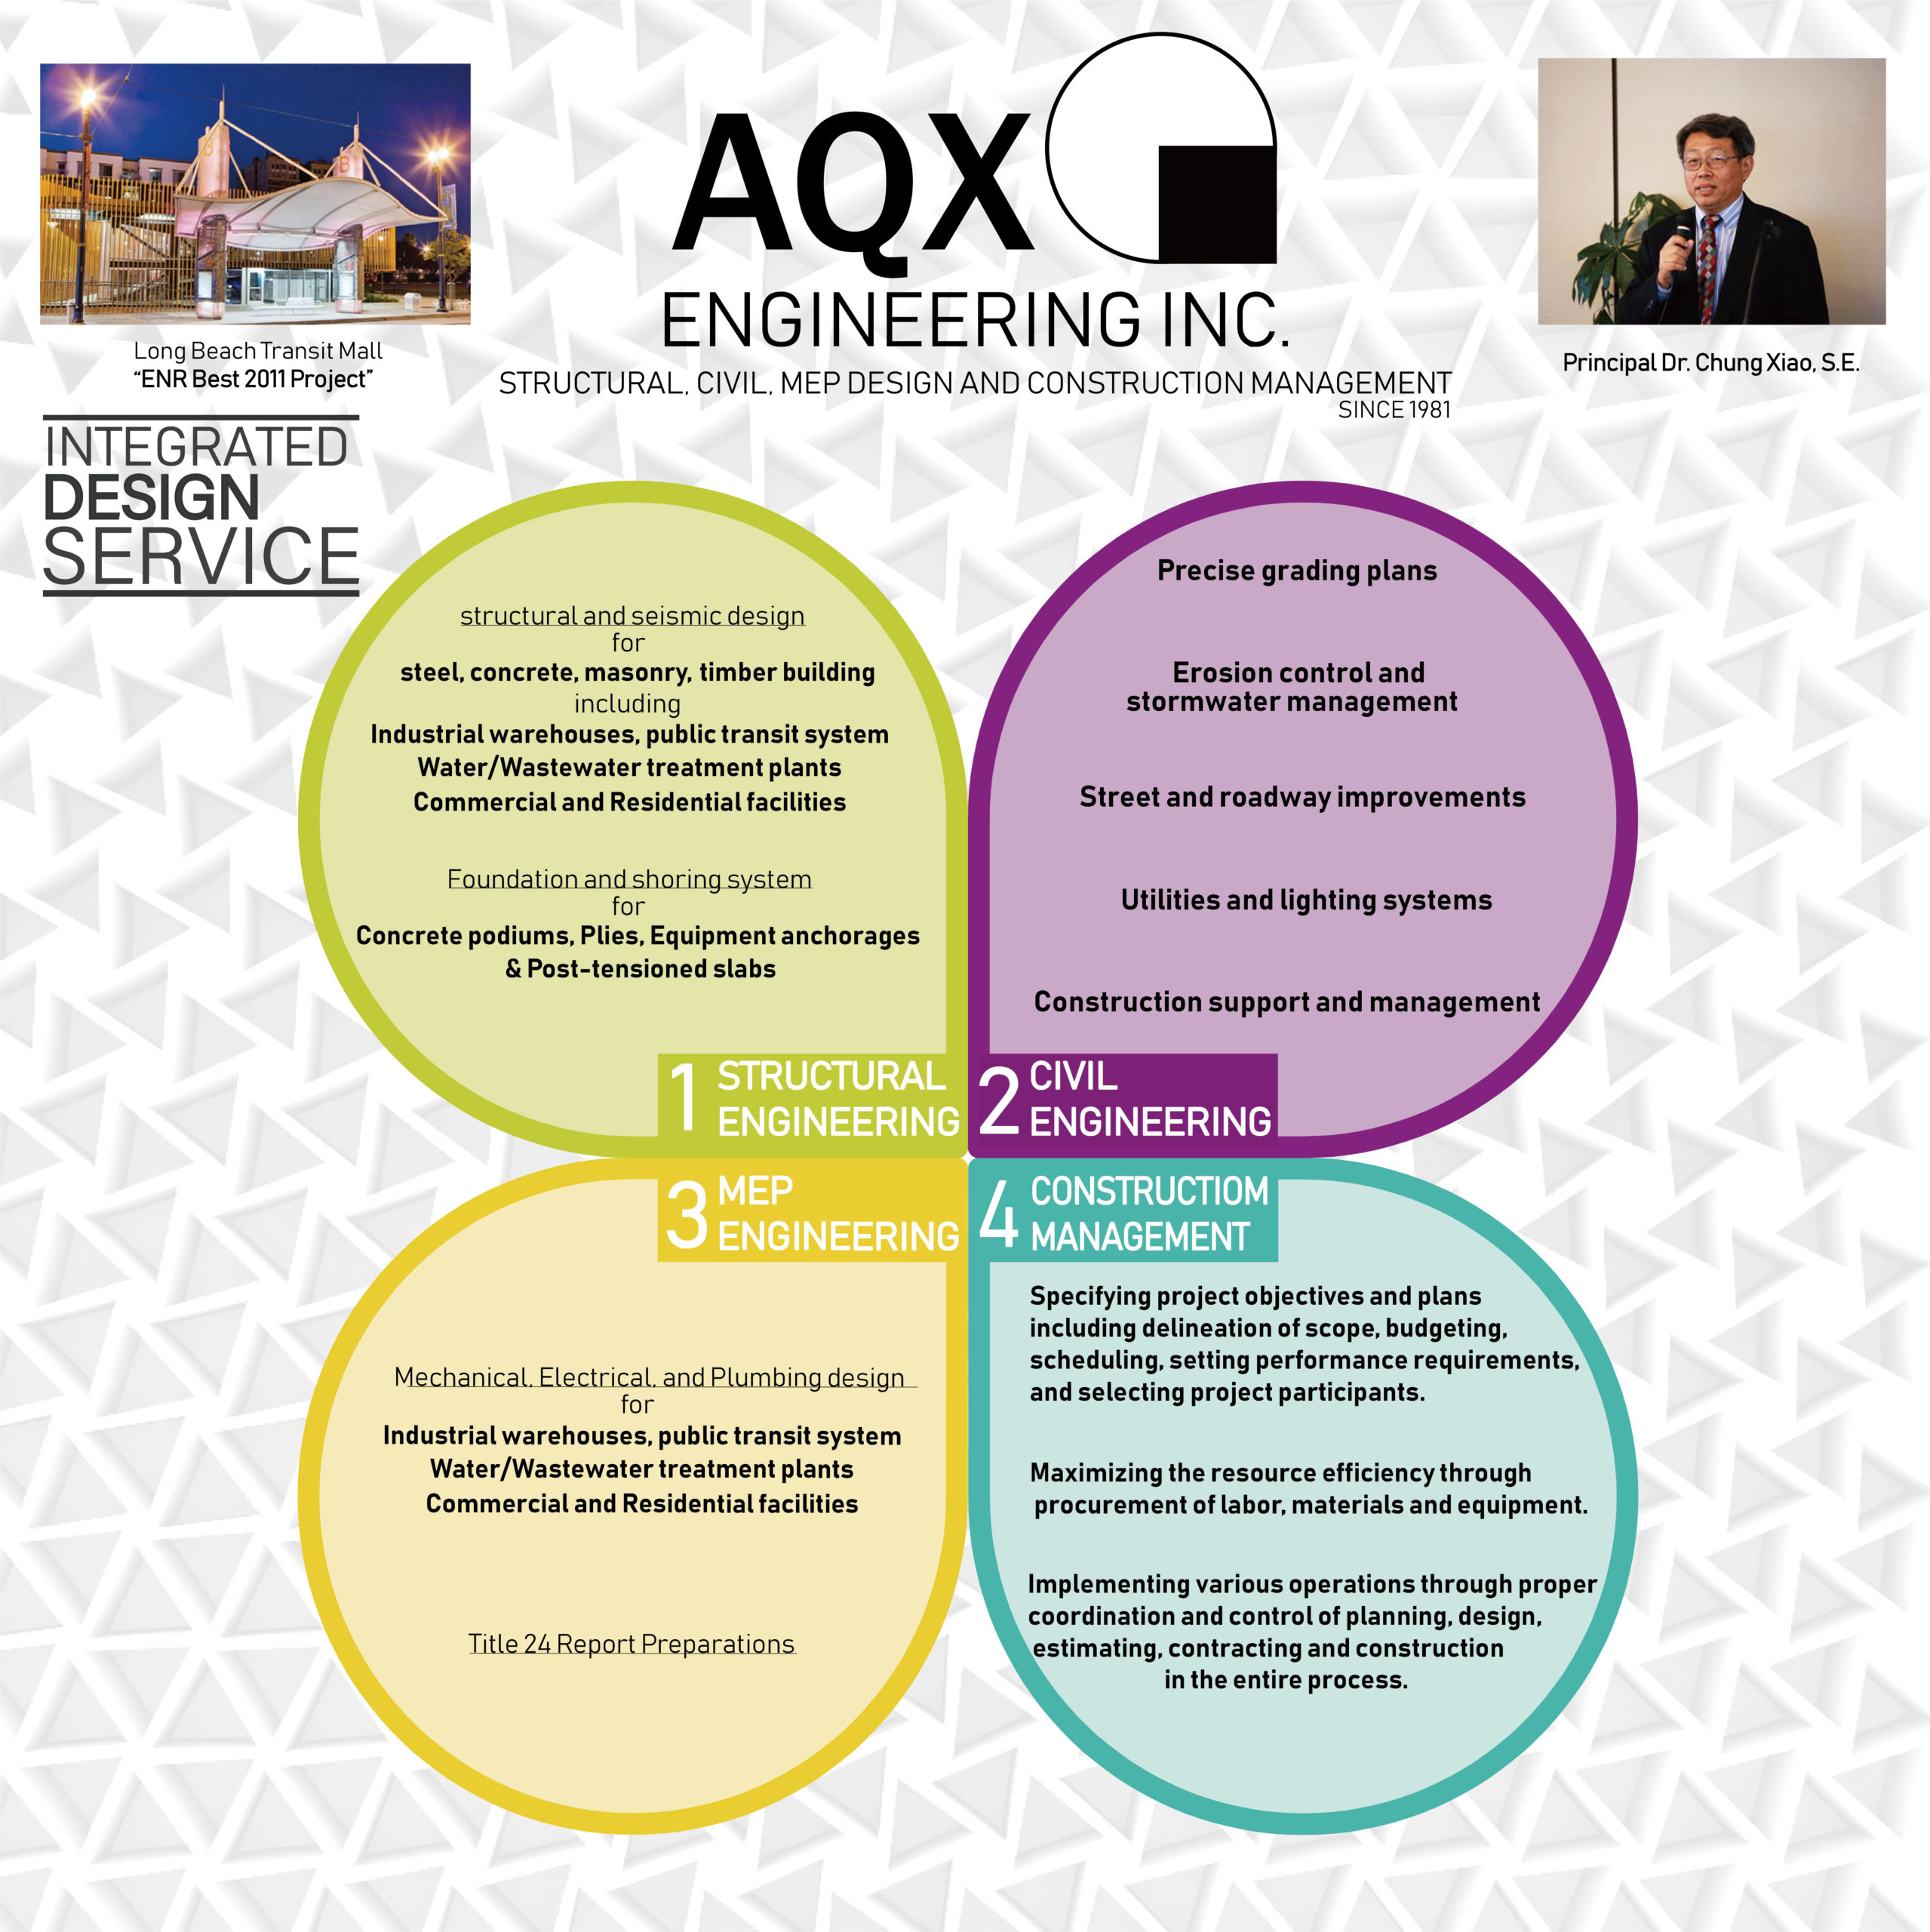 Service Civil Engineering Aqx Engineering Inc